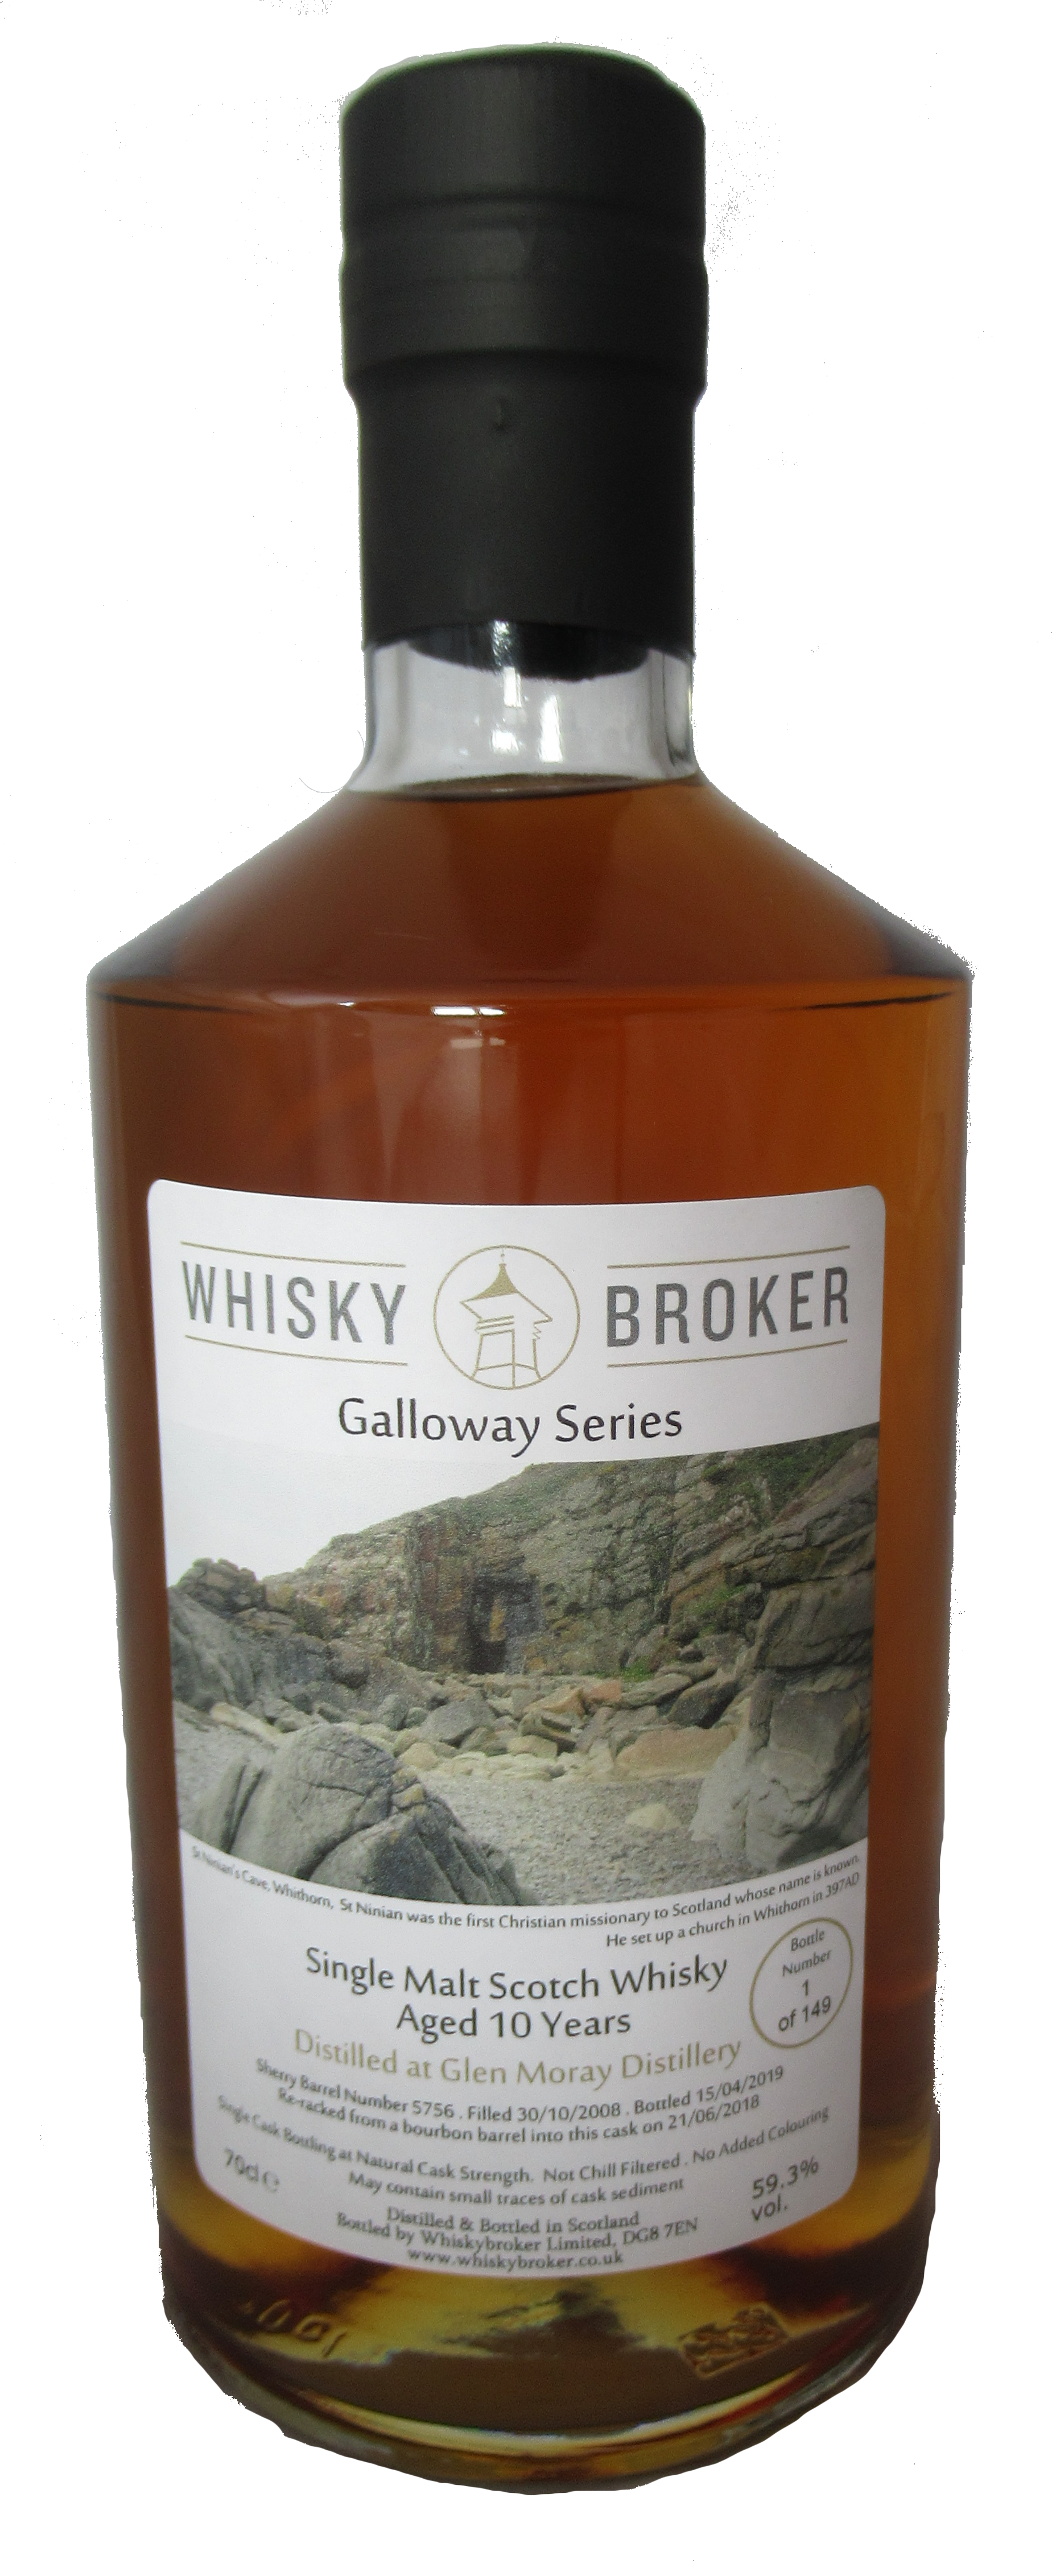 70cl, 10yo Distilled at Glen Moray Distillery